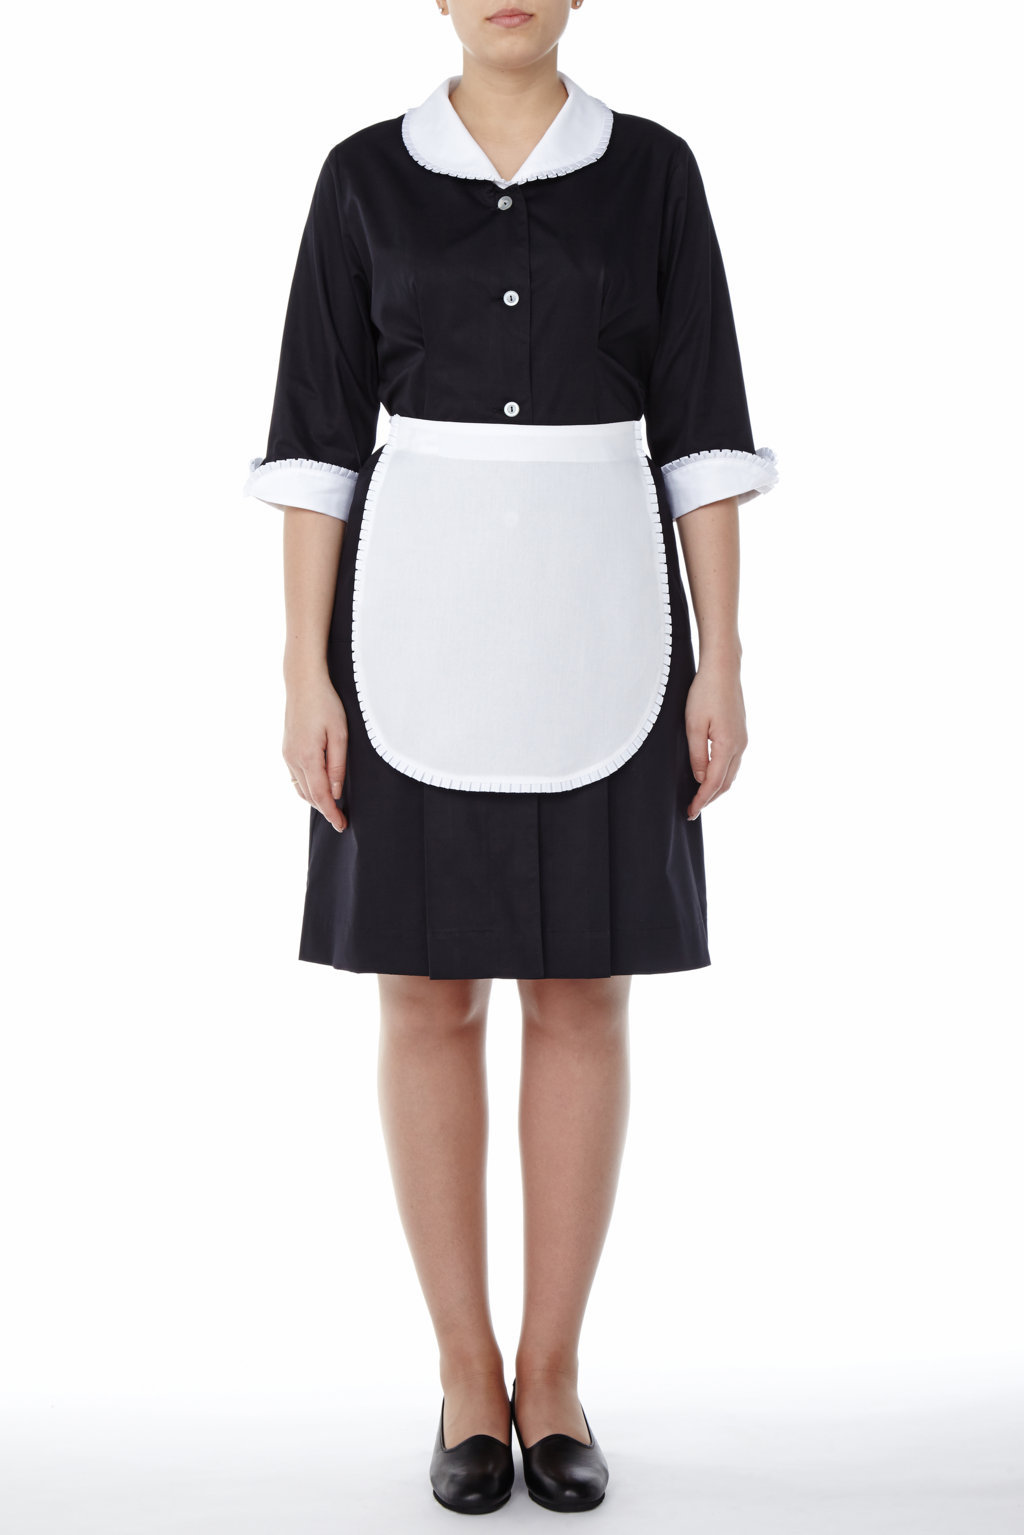 Pia dress with apron - Hotel Staff Uniforms Mercatores